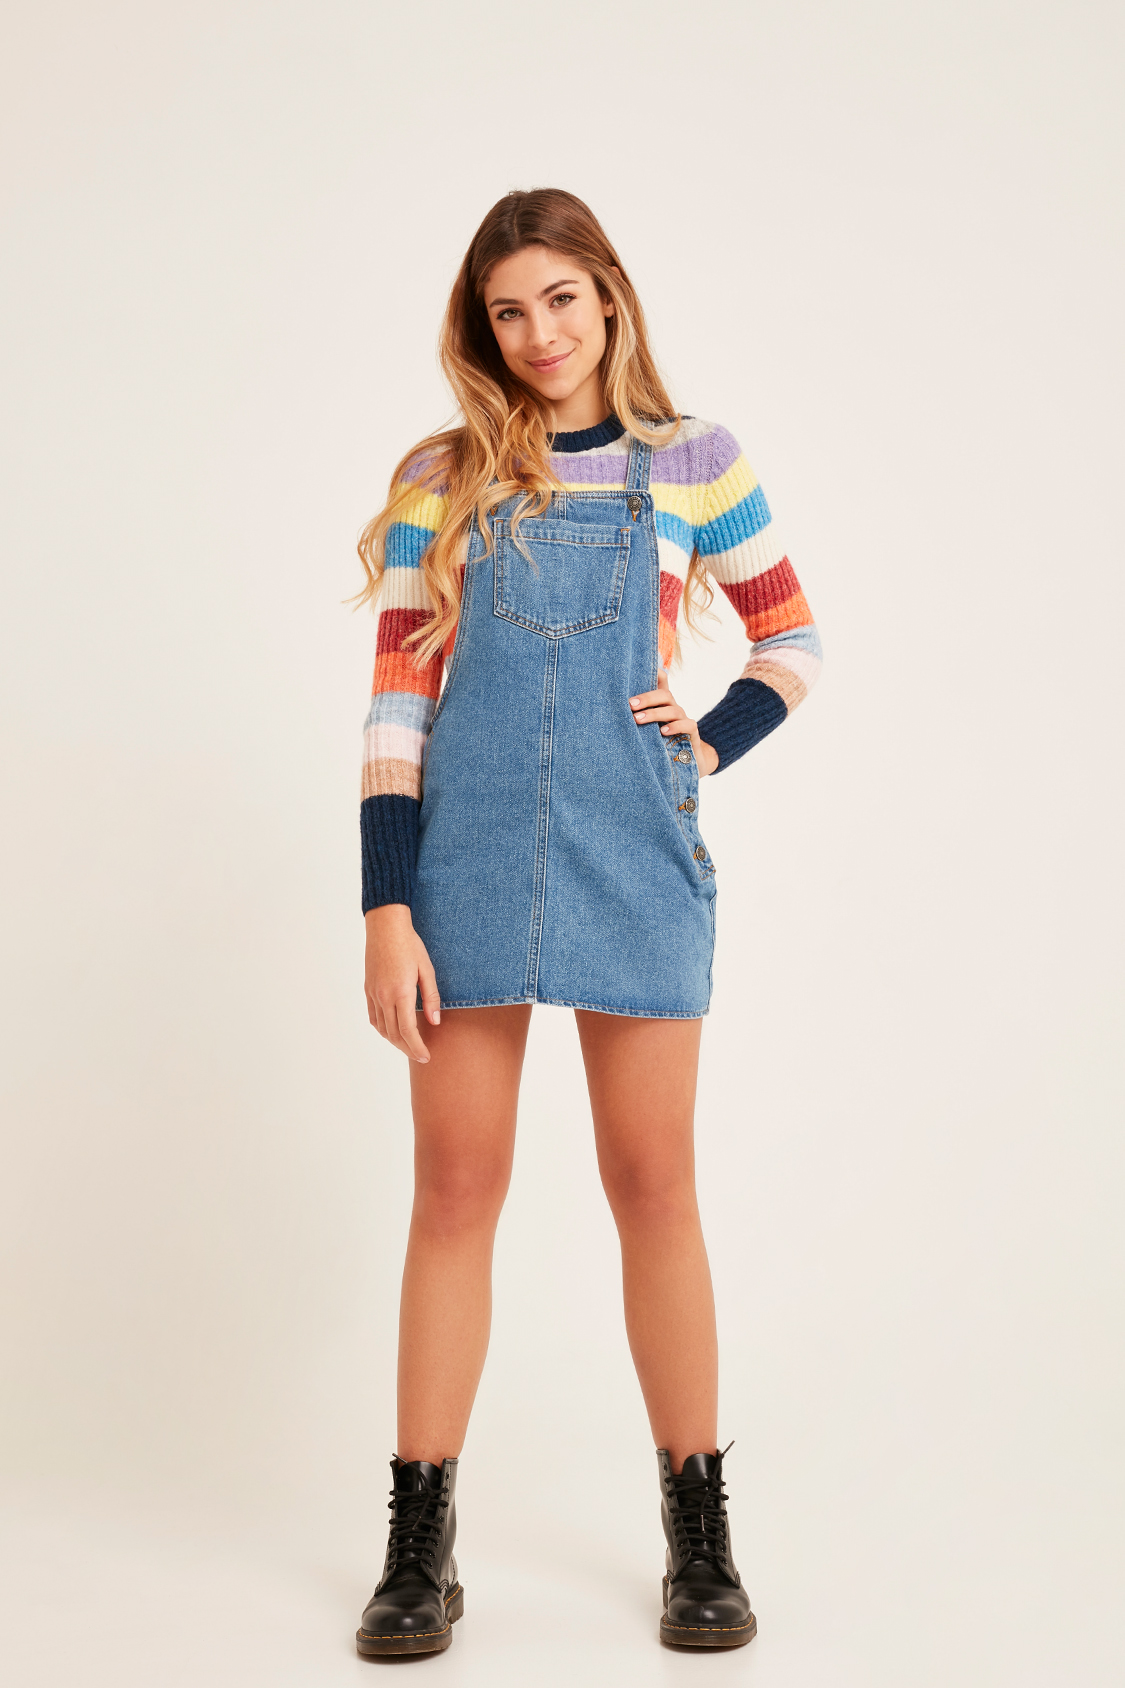 1a4300fd5ba Dungaree denim dress. Skip to the beginning of the images gallery